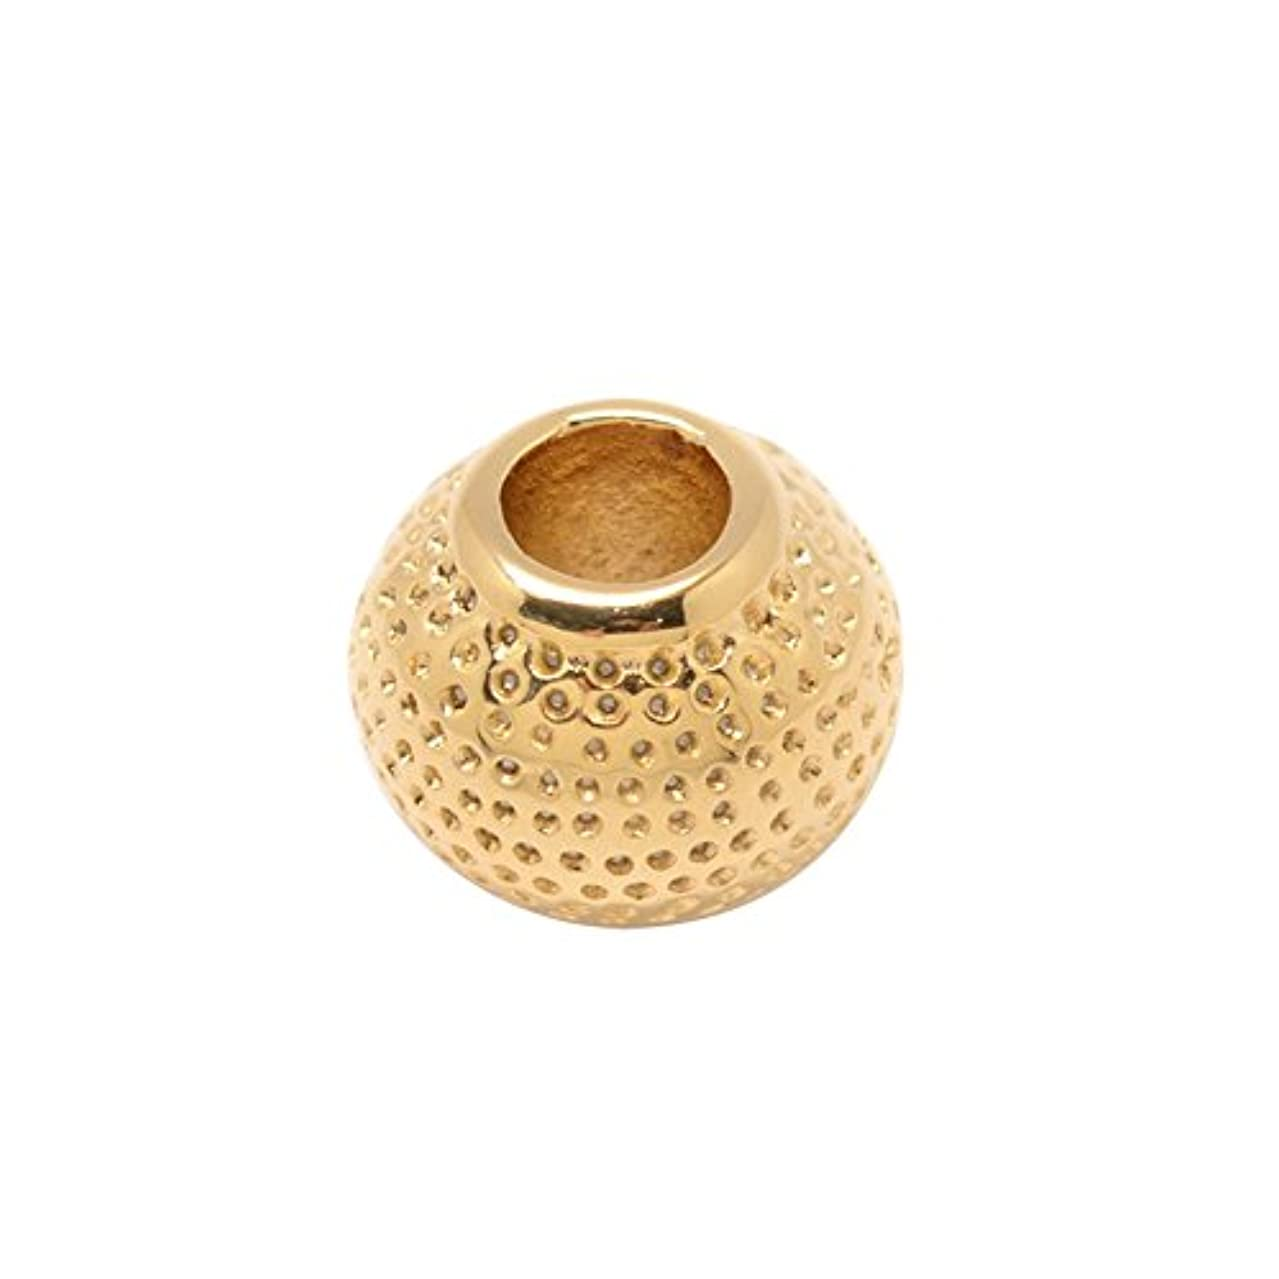 NBEADS 10 Pcs Rondelle 304 Stainless Steel European Large Hole Beads, Golden, 12x10mm, Hole: 5mm